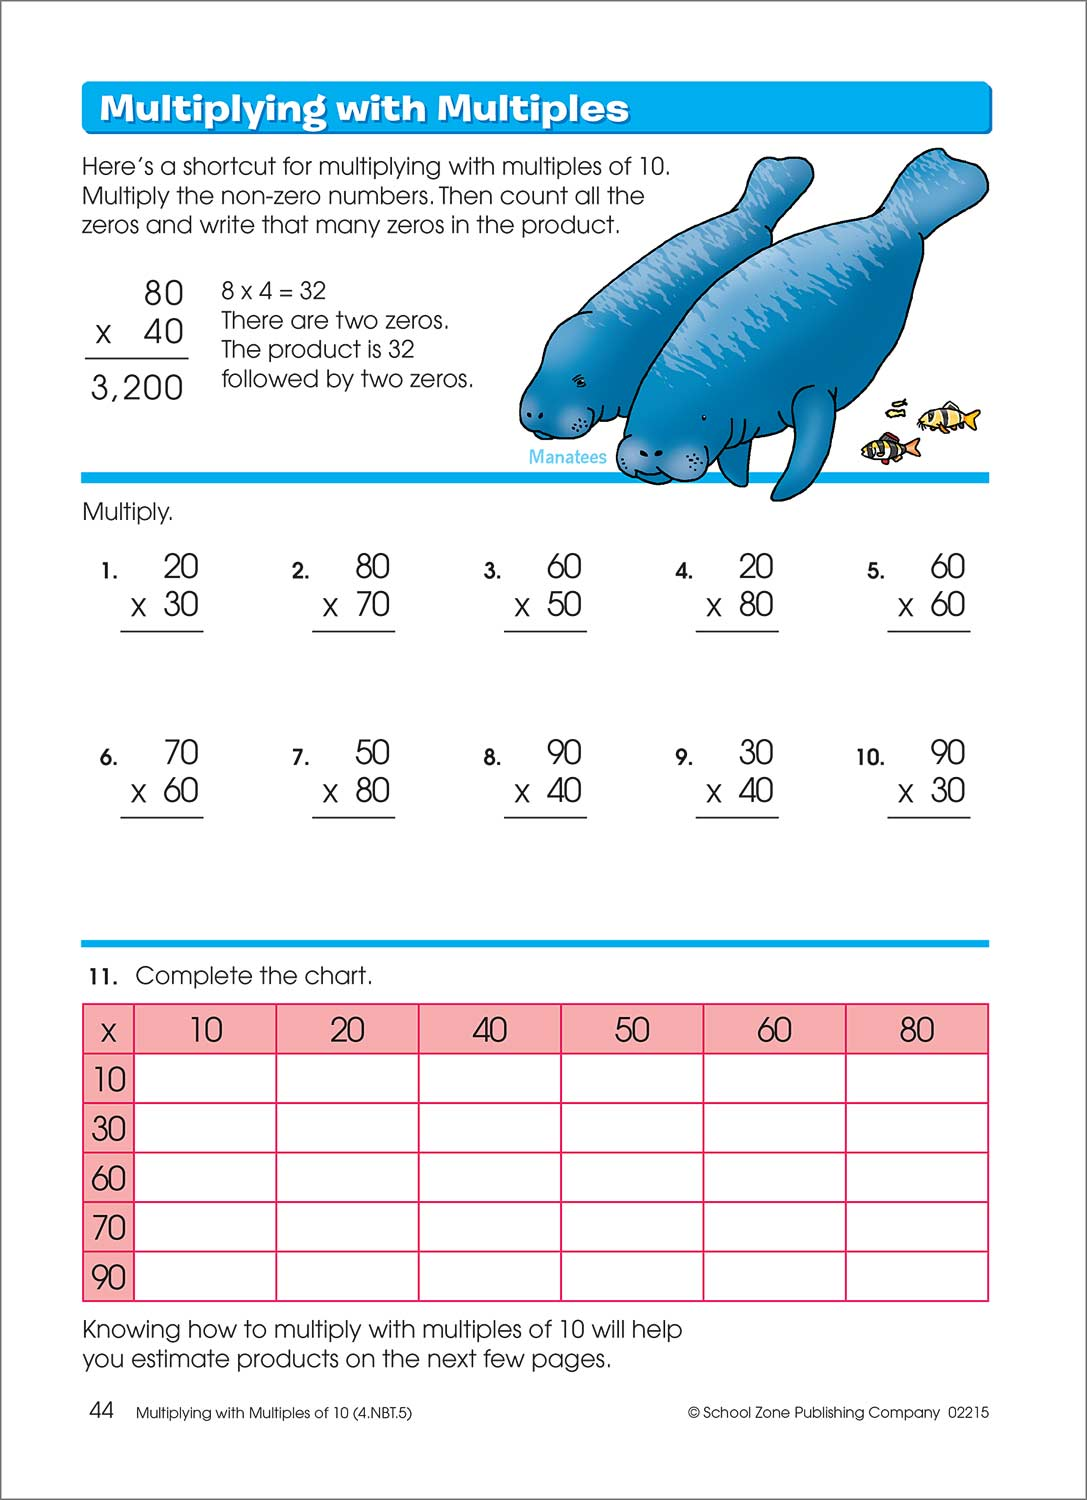 3rd-4th Grade Workbook - Multiplication Division Deluxe - Fun Stuff Toys